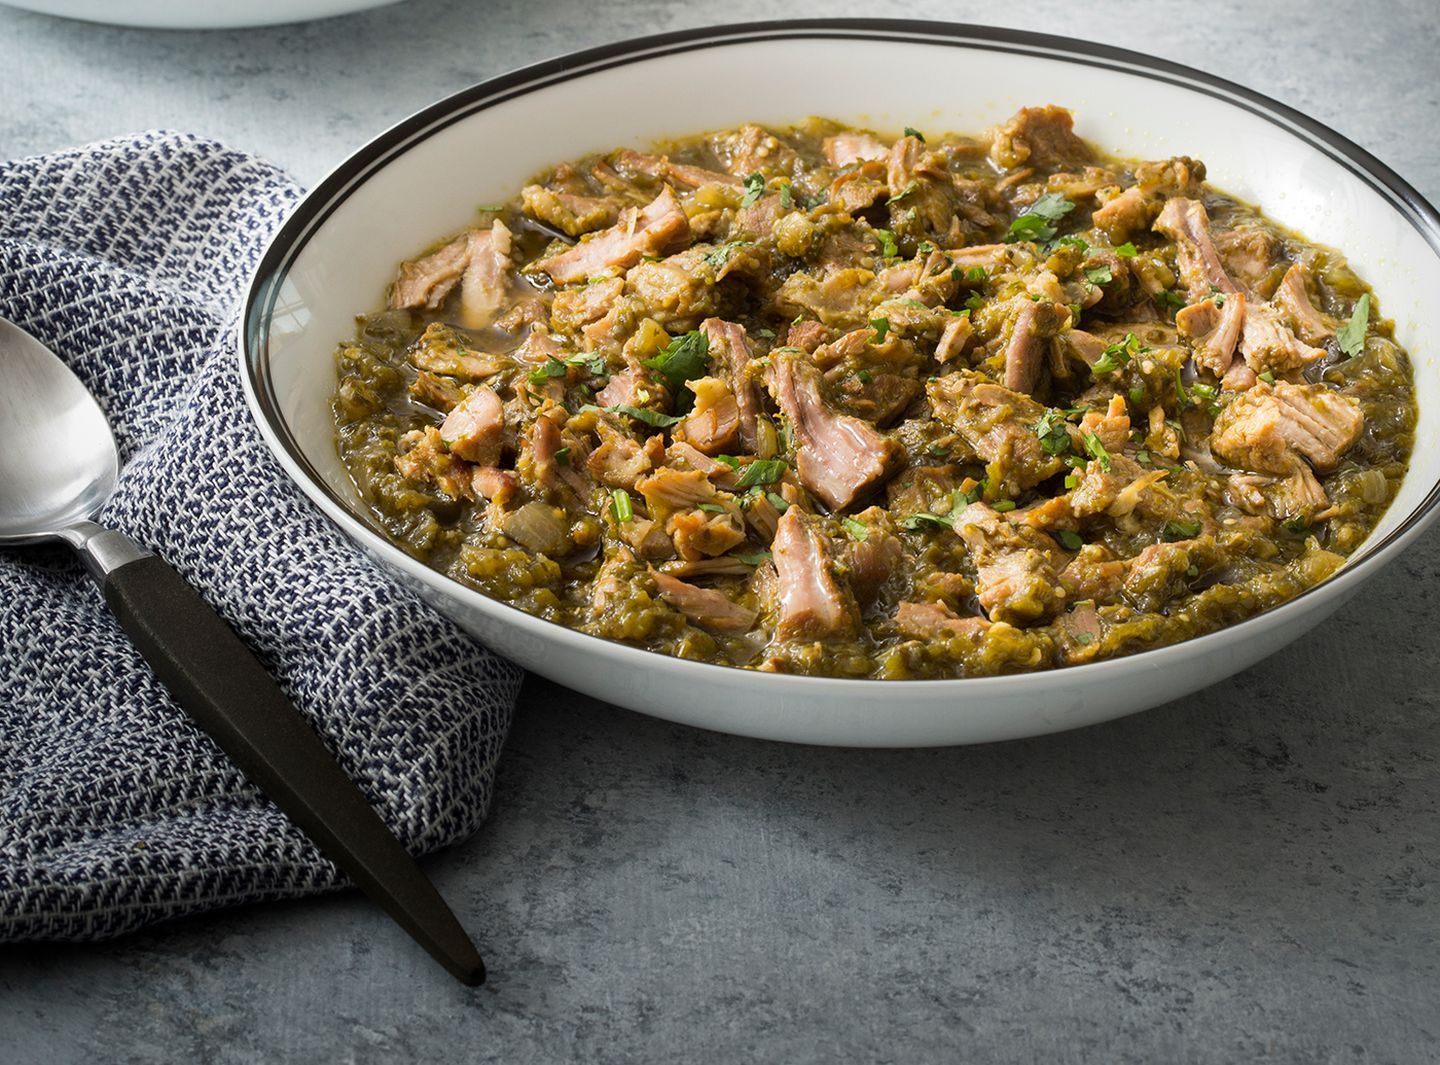 Recipes New Mexican Style Green Chili Plus Beer And Cheese Bread And An Ancho Spiced Dessert The Boston Globe